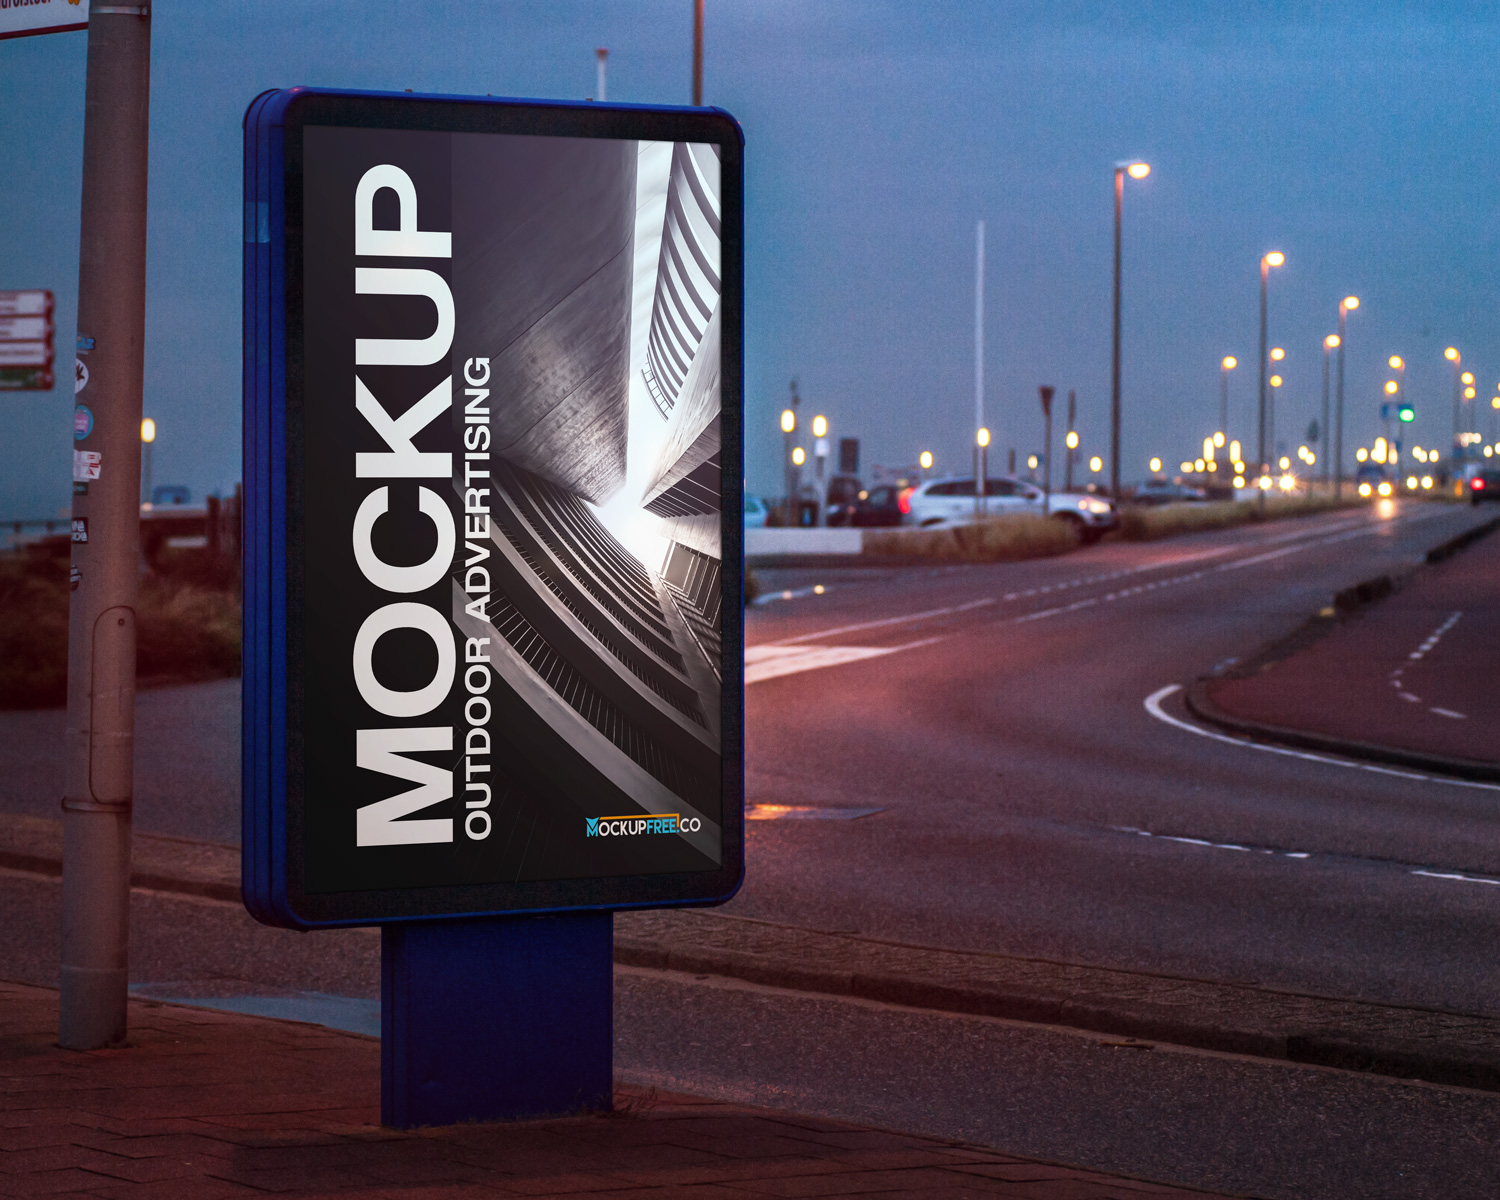 Free-Bus-Stop-Outdoor-Advertising-Mockup-01